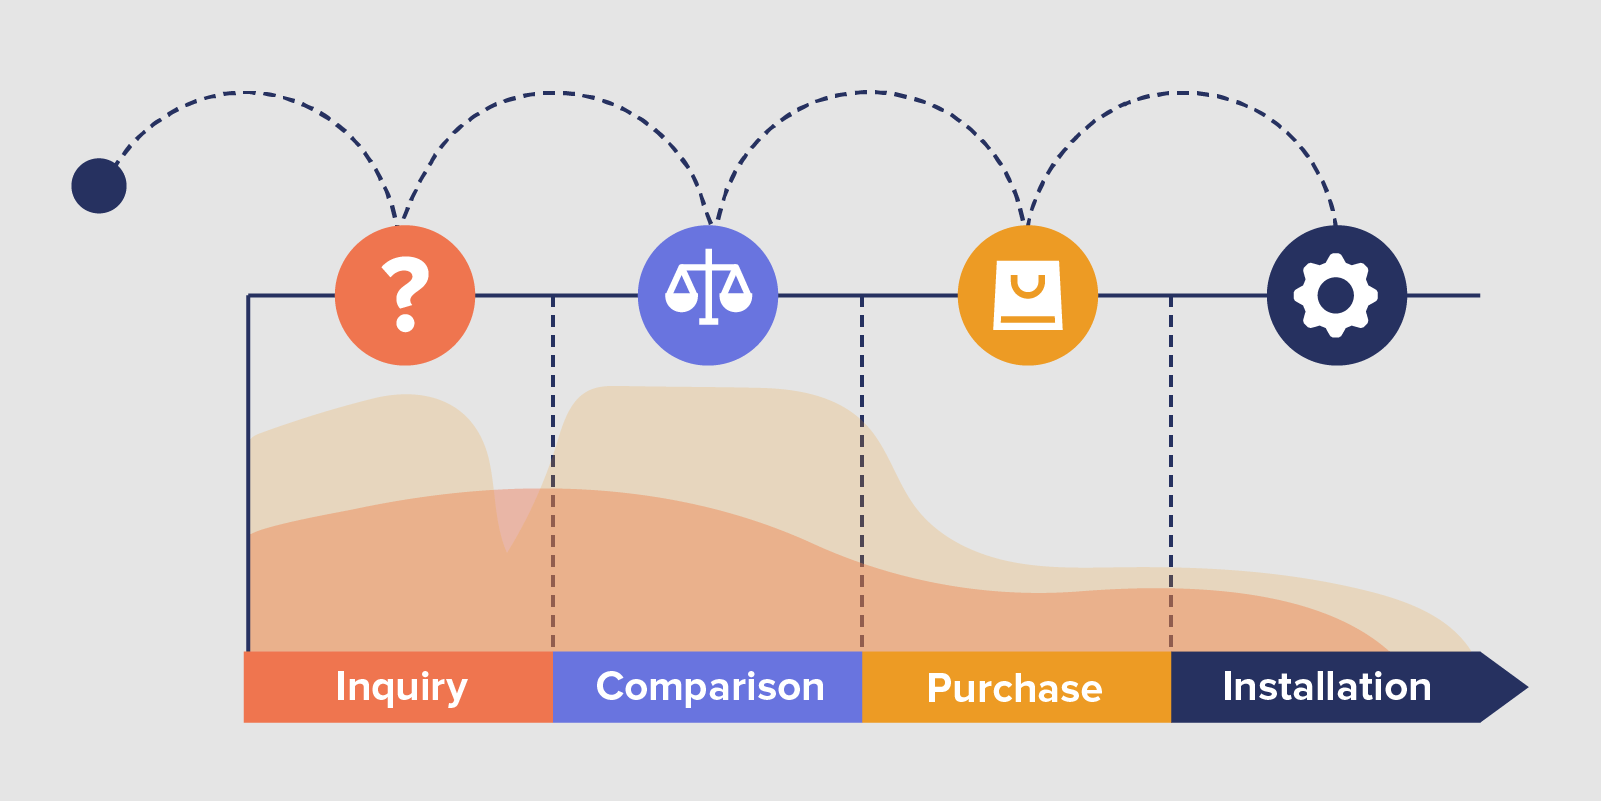 User Journey Map example - showing 4 stages in the user journey